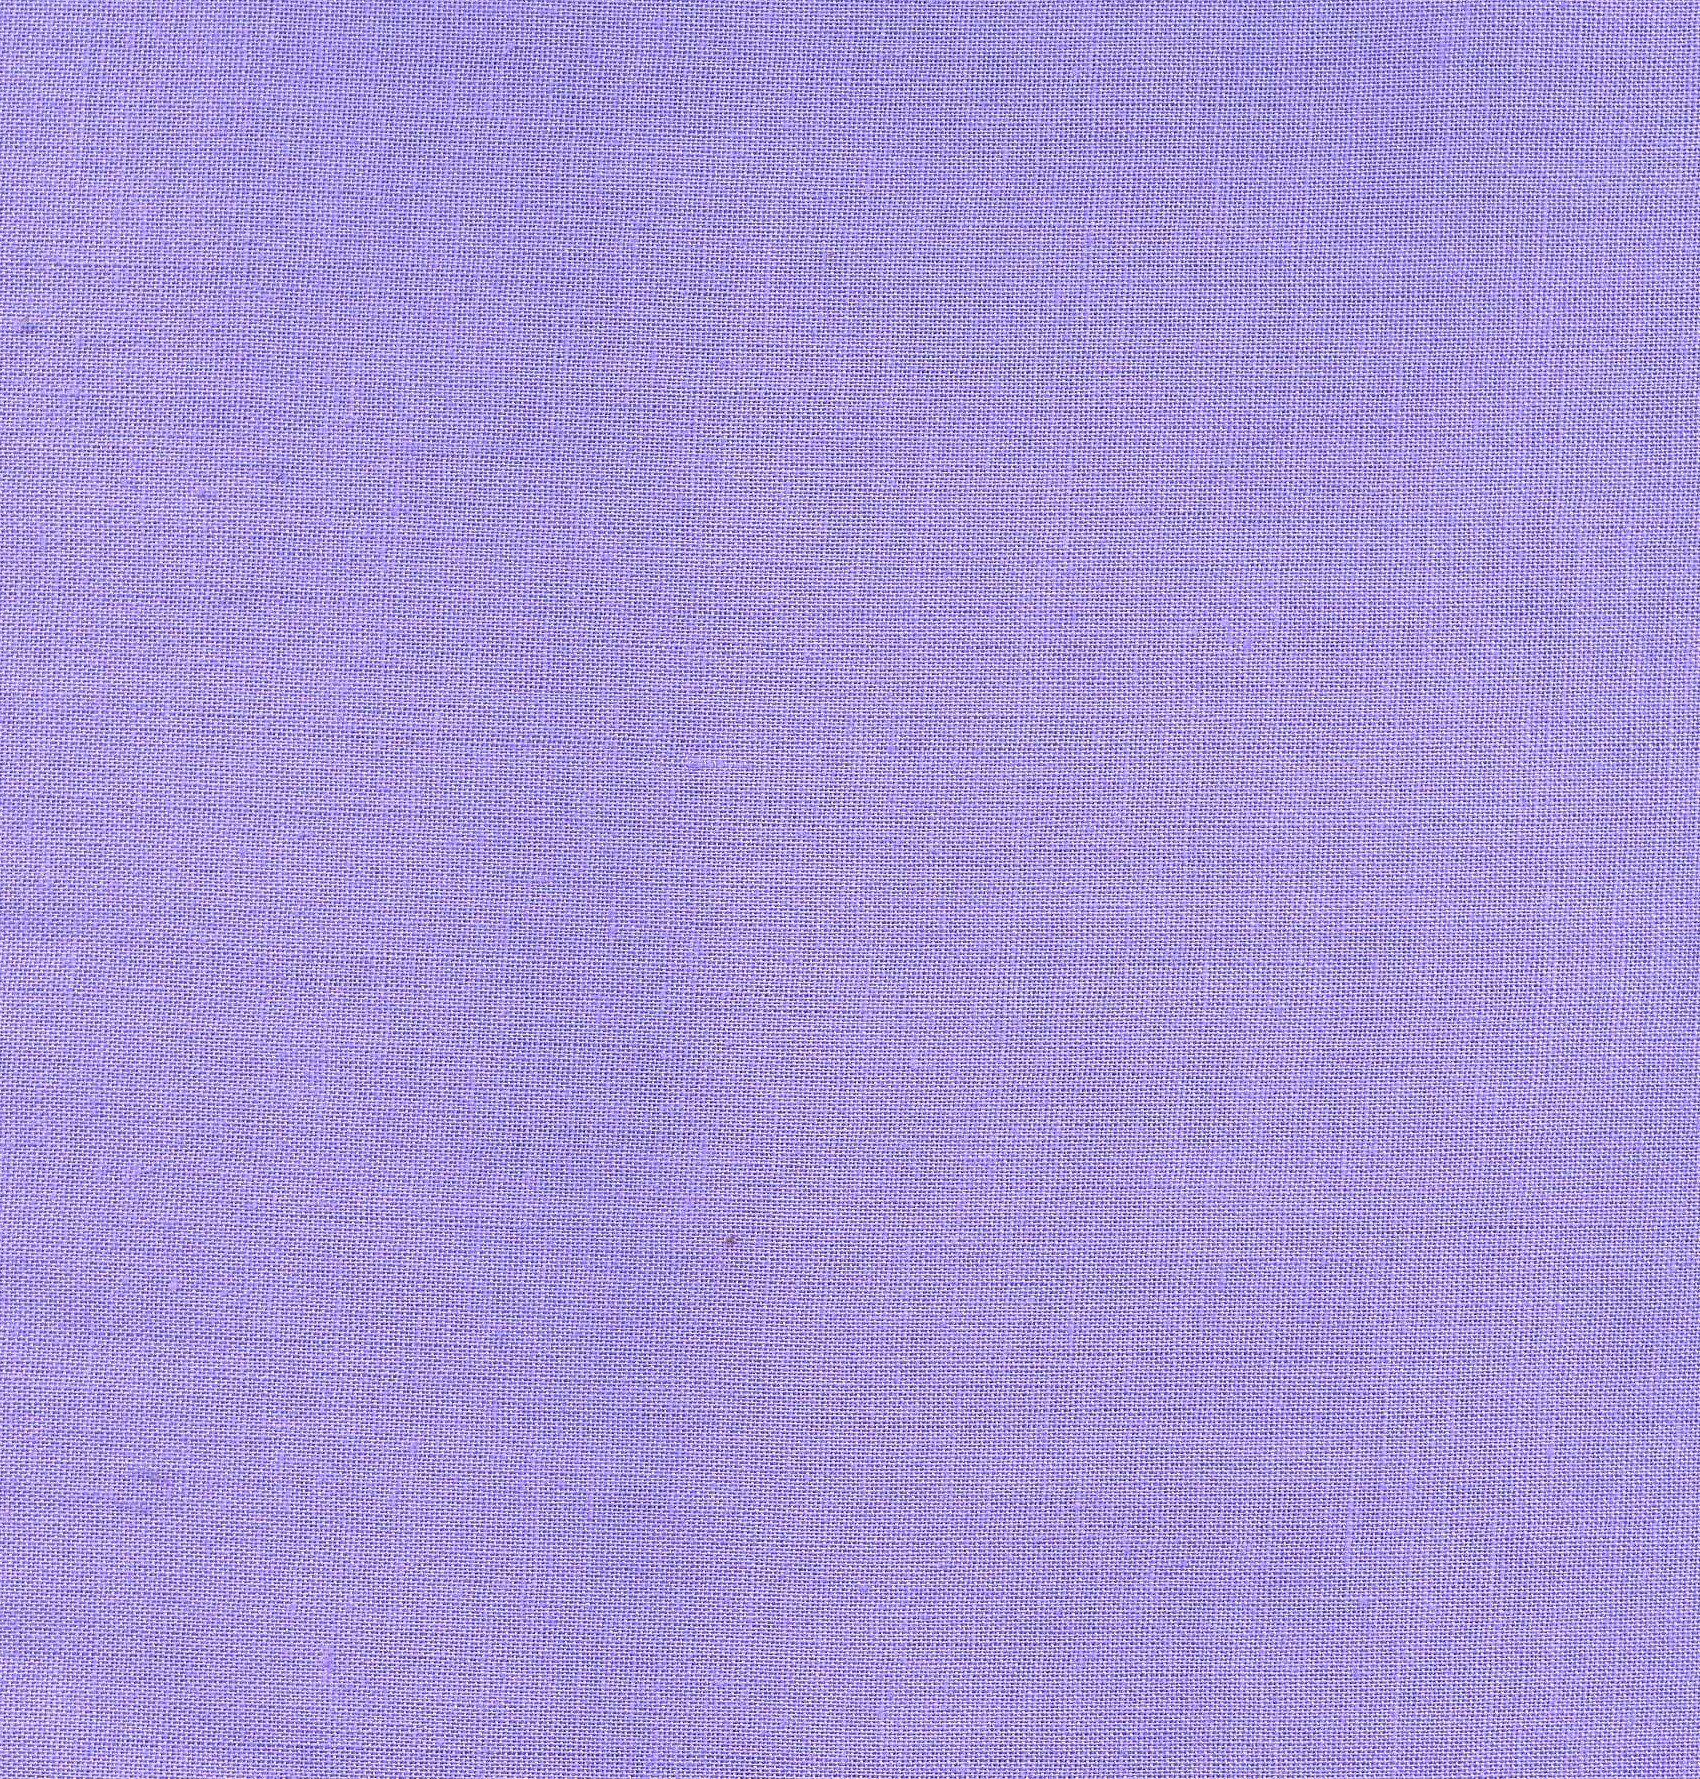 Lilac Broad Cloth